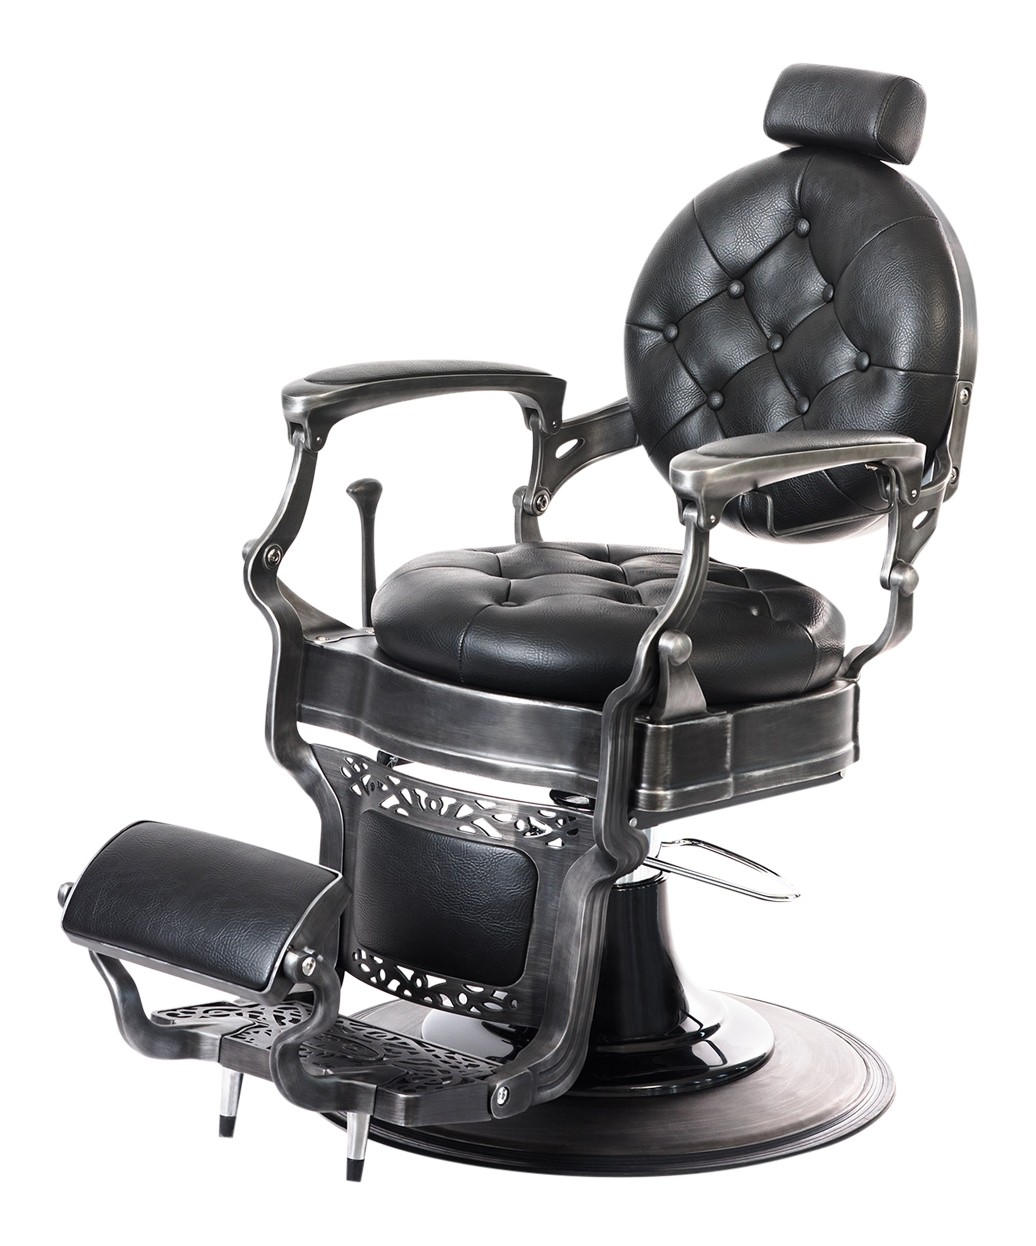 hair chairs hair salon furniture wholesale PU leather barber chair DS-T256